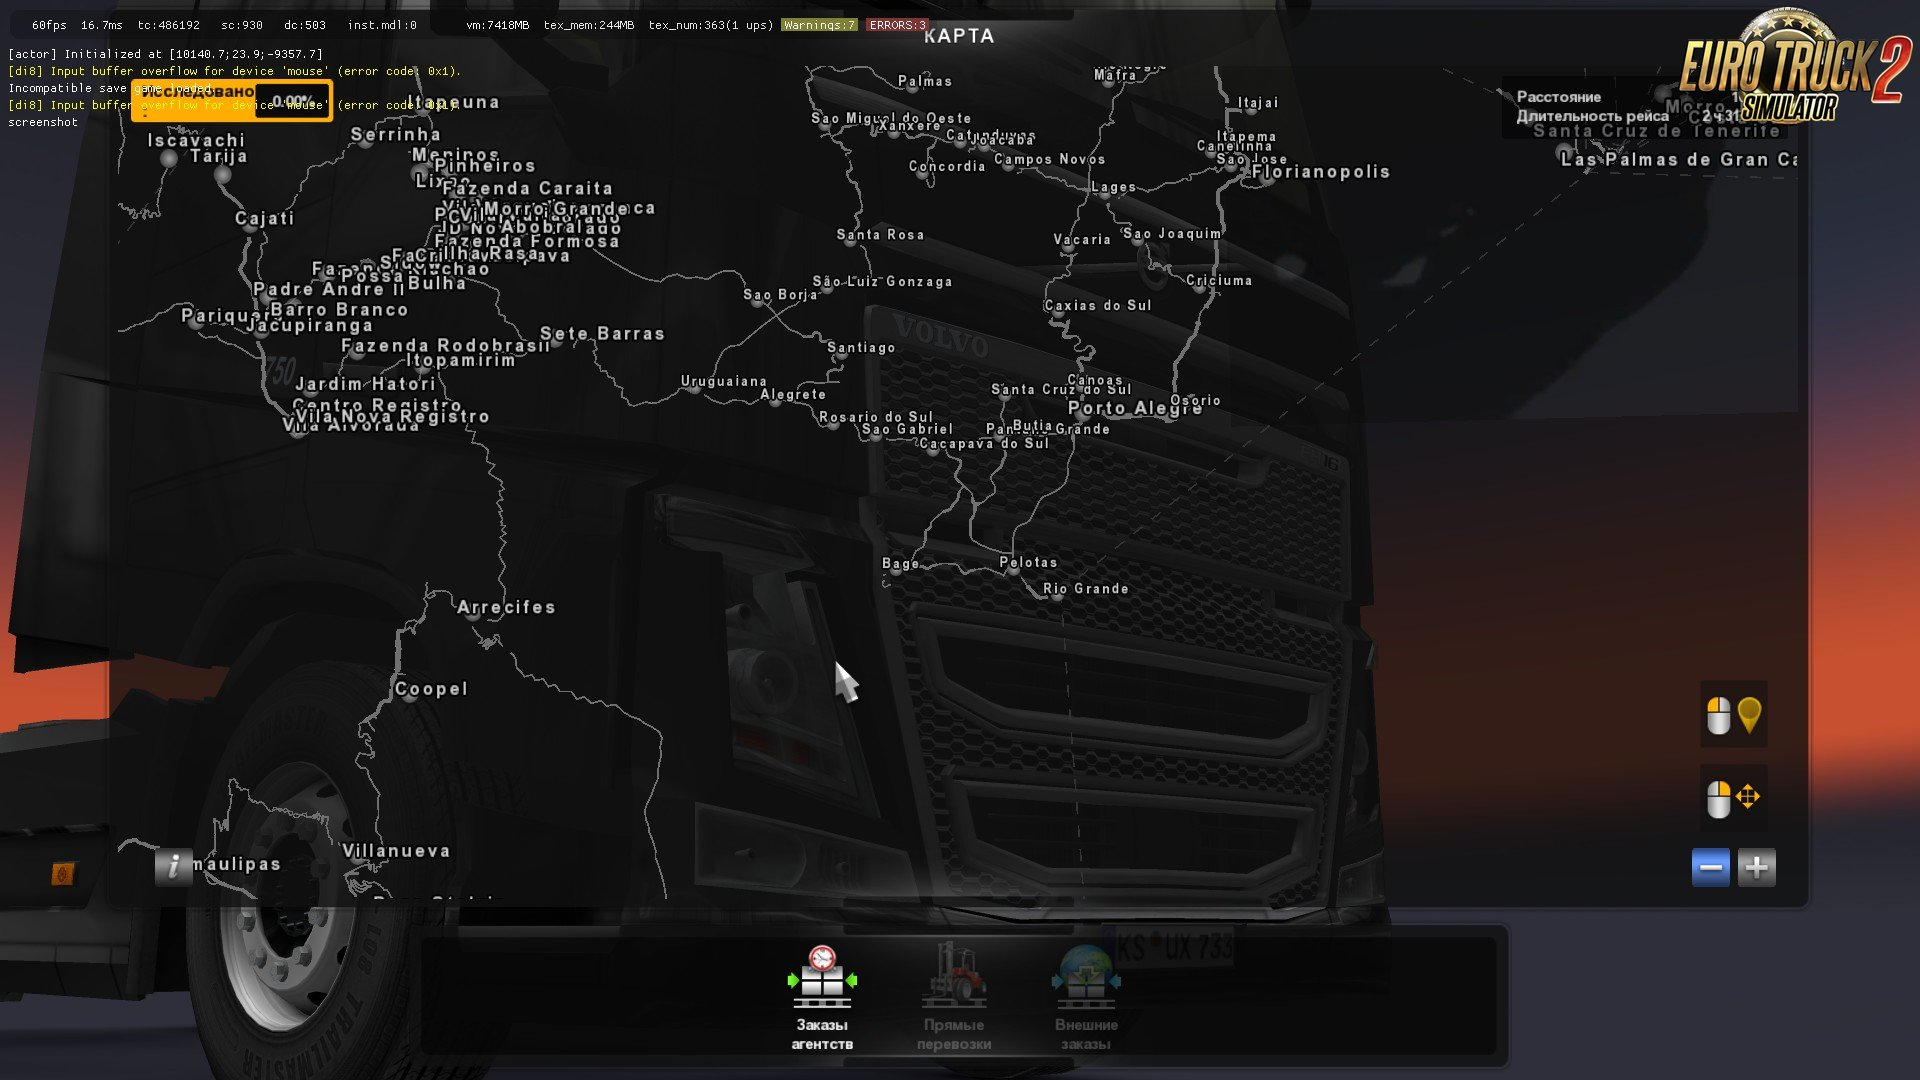 euro truck simulator europe map download